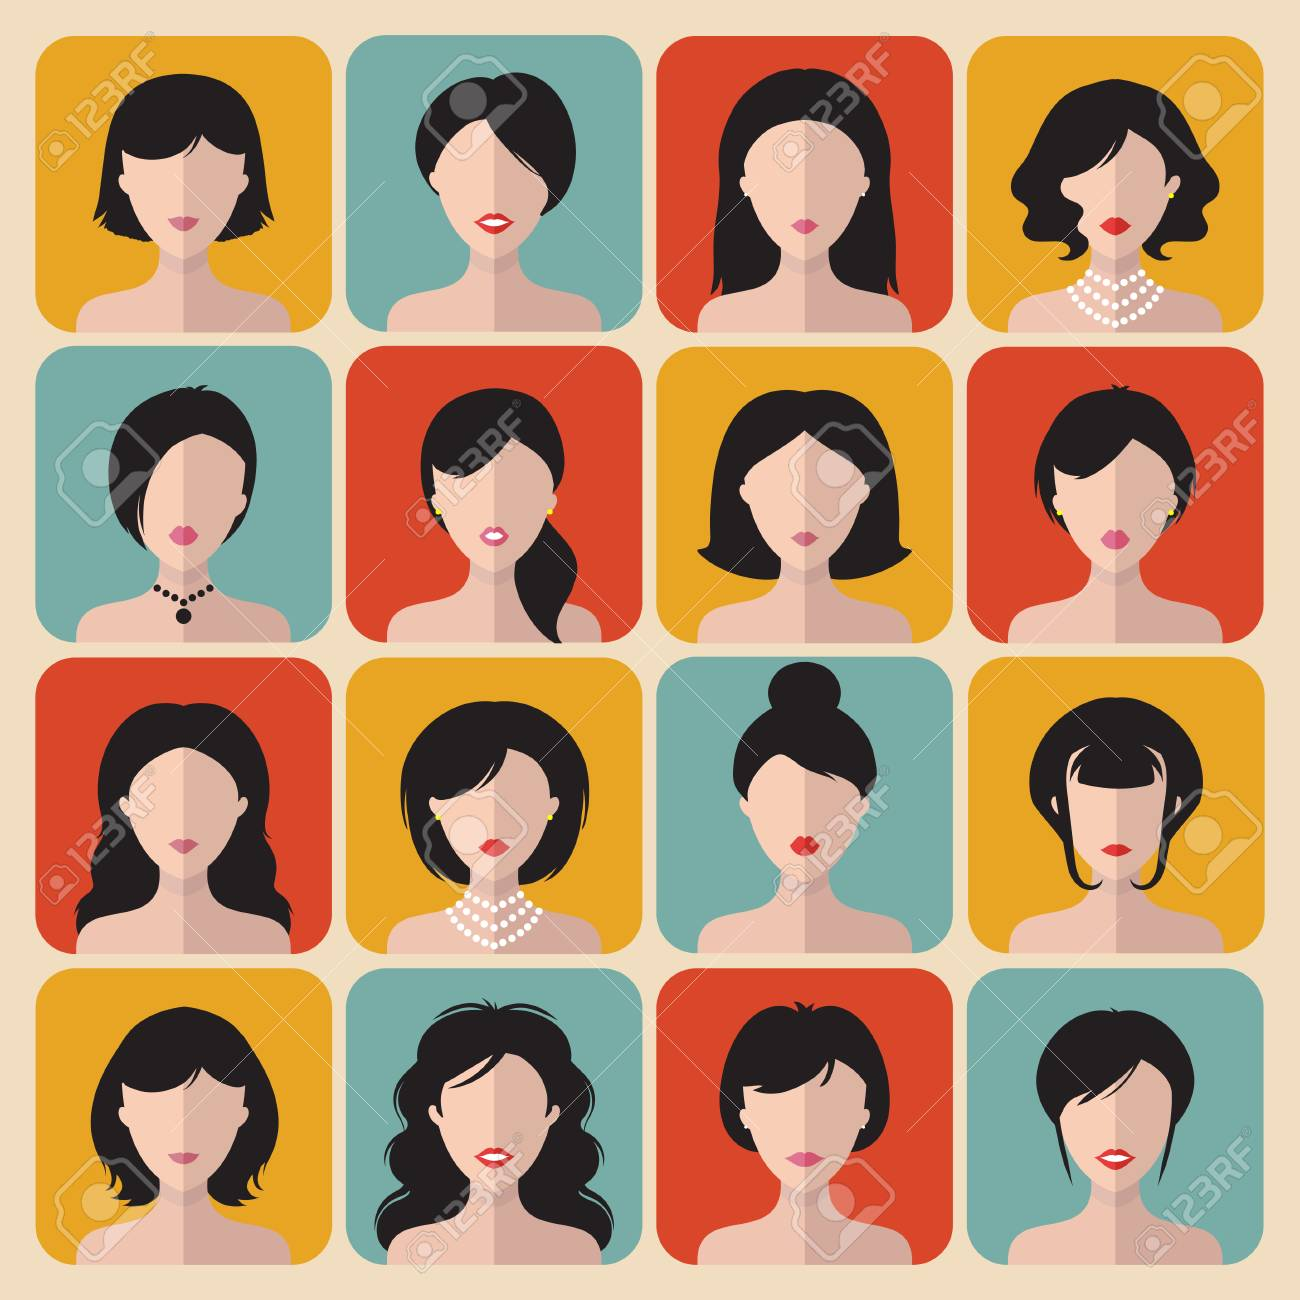 Big Vector Set Of Different Haircuts Women App Icons In Flat